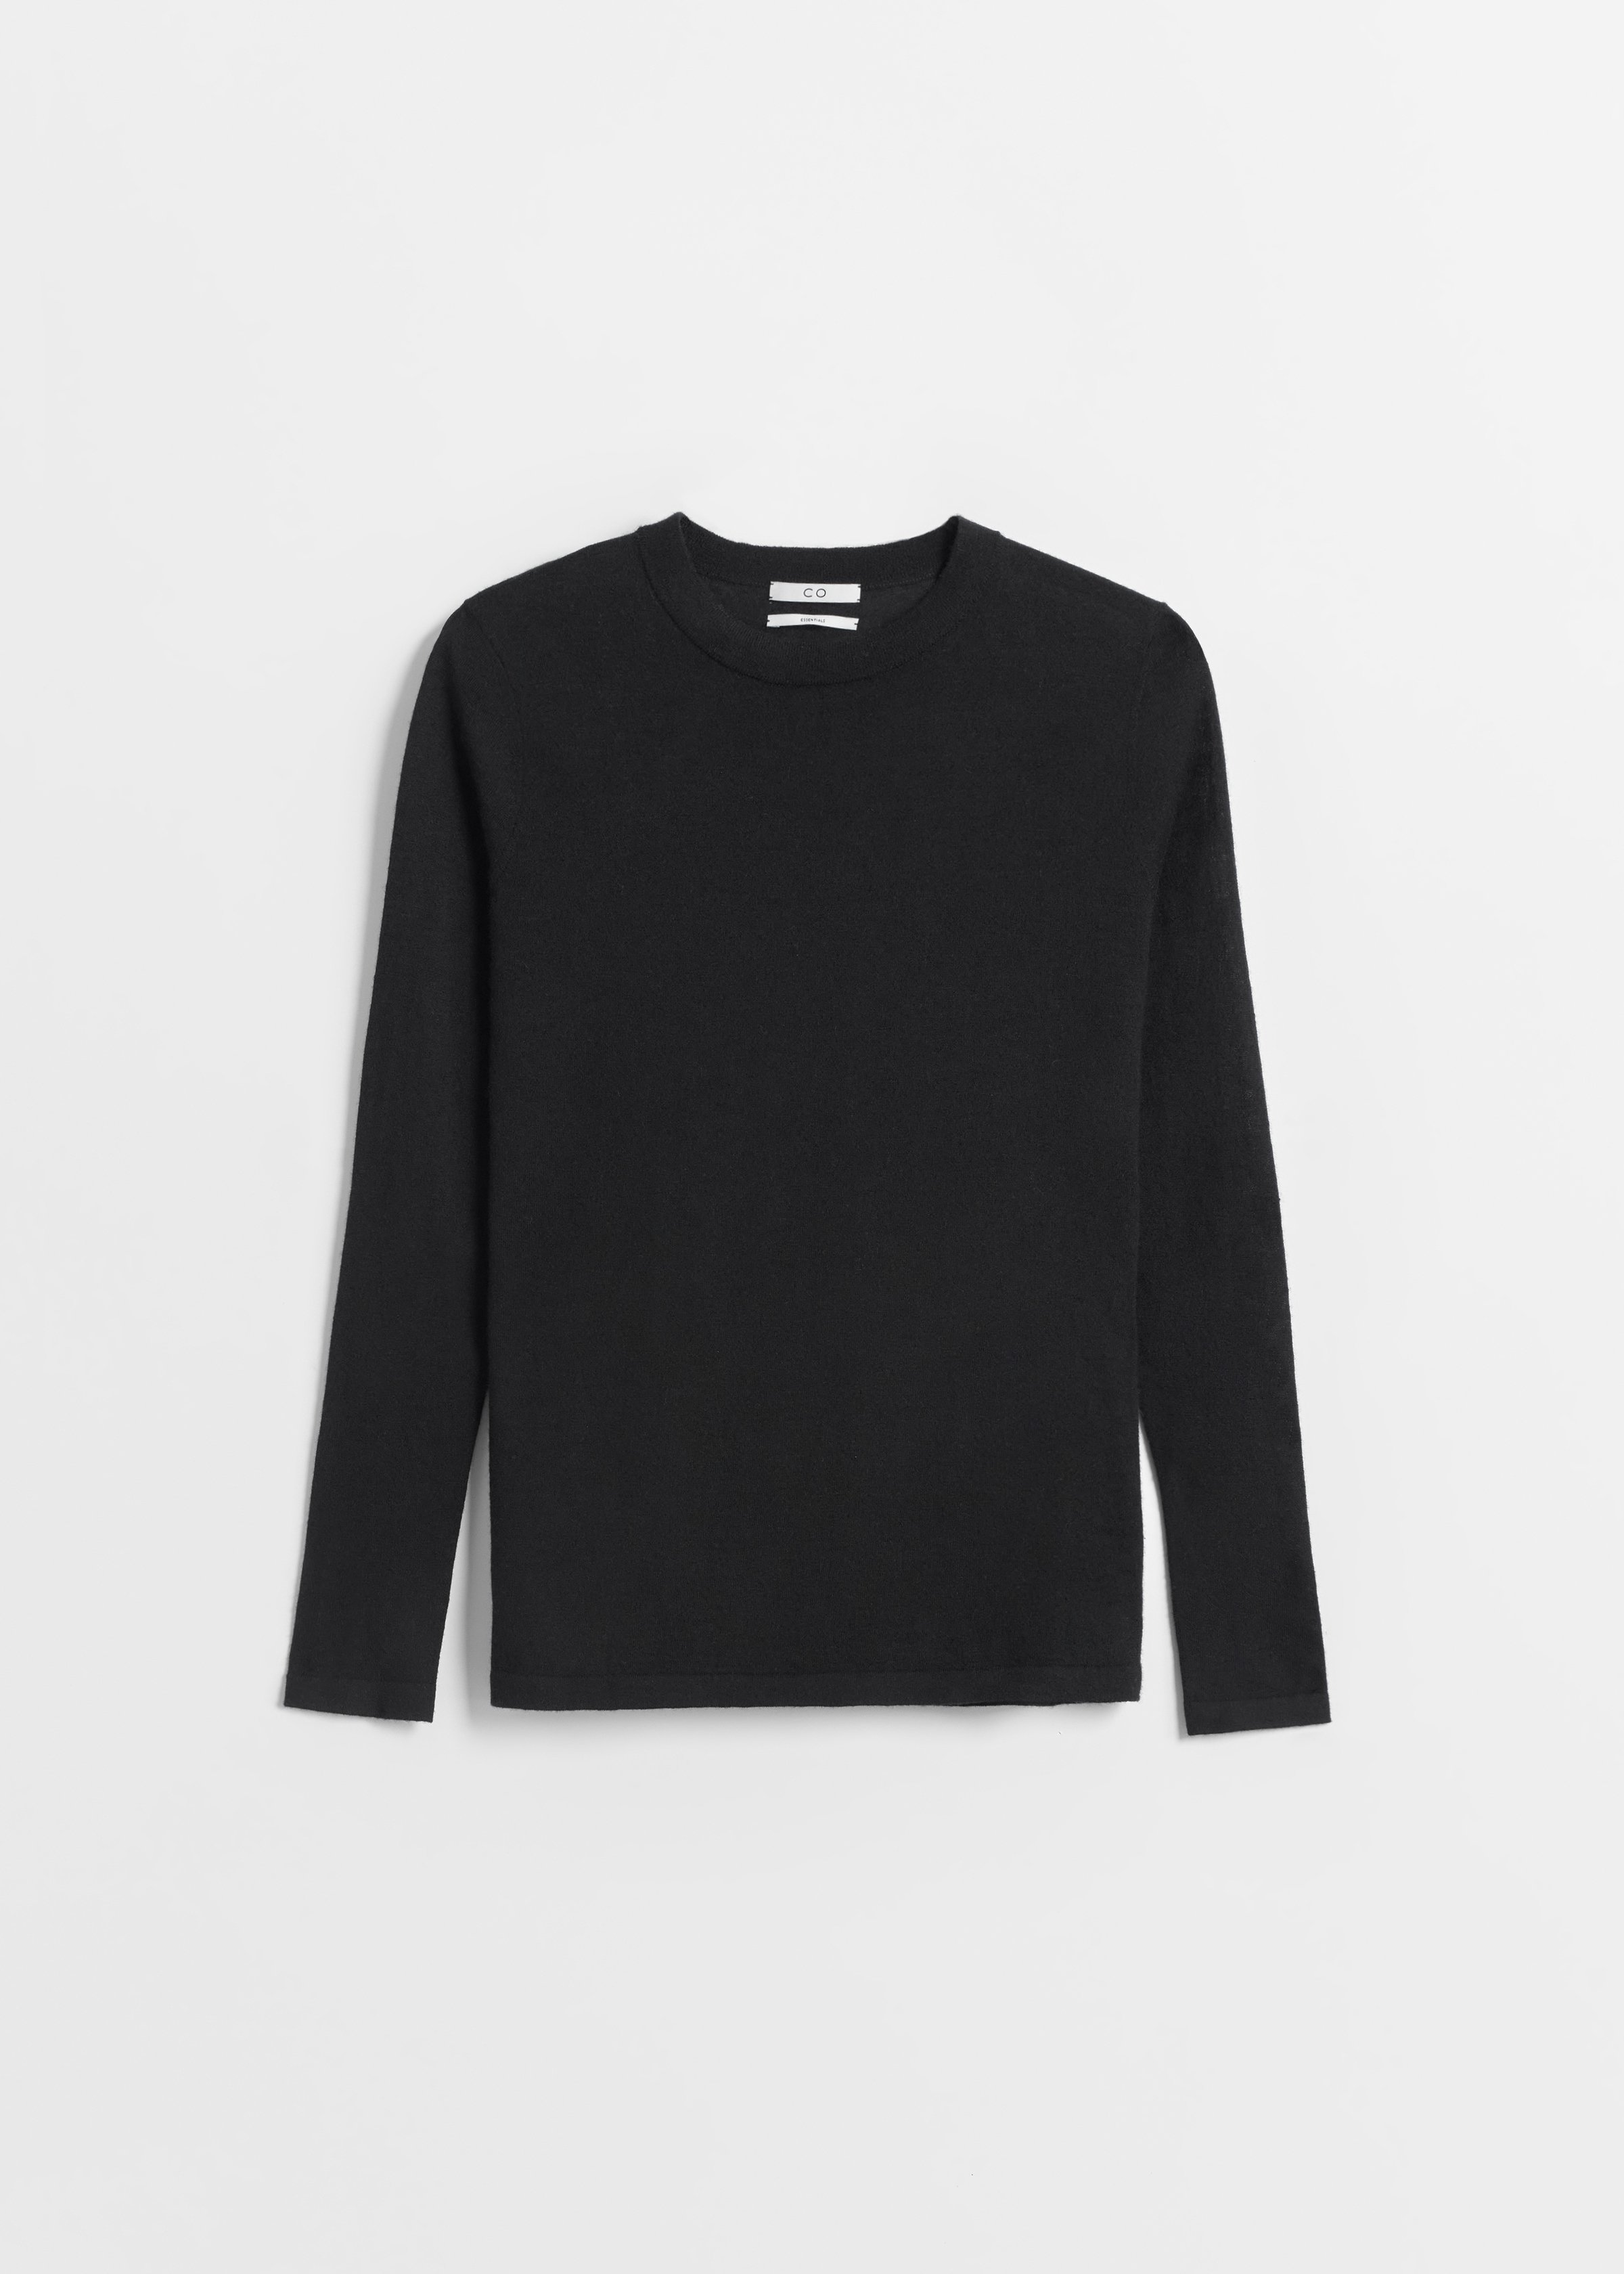 Long Sleeve Cashmere Crew Neck - Taupe in Black by Co Collections